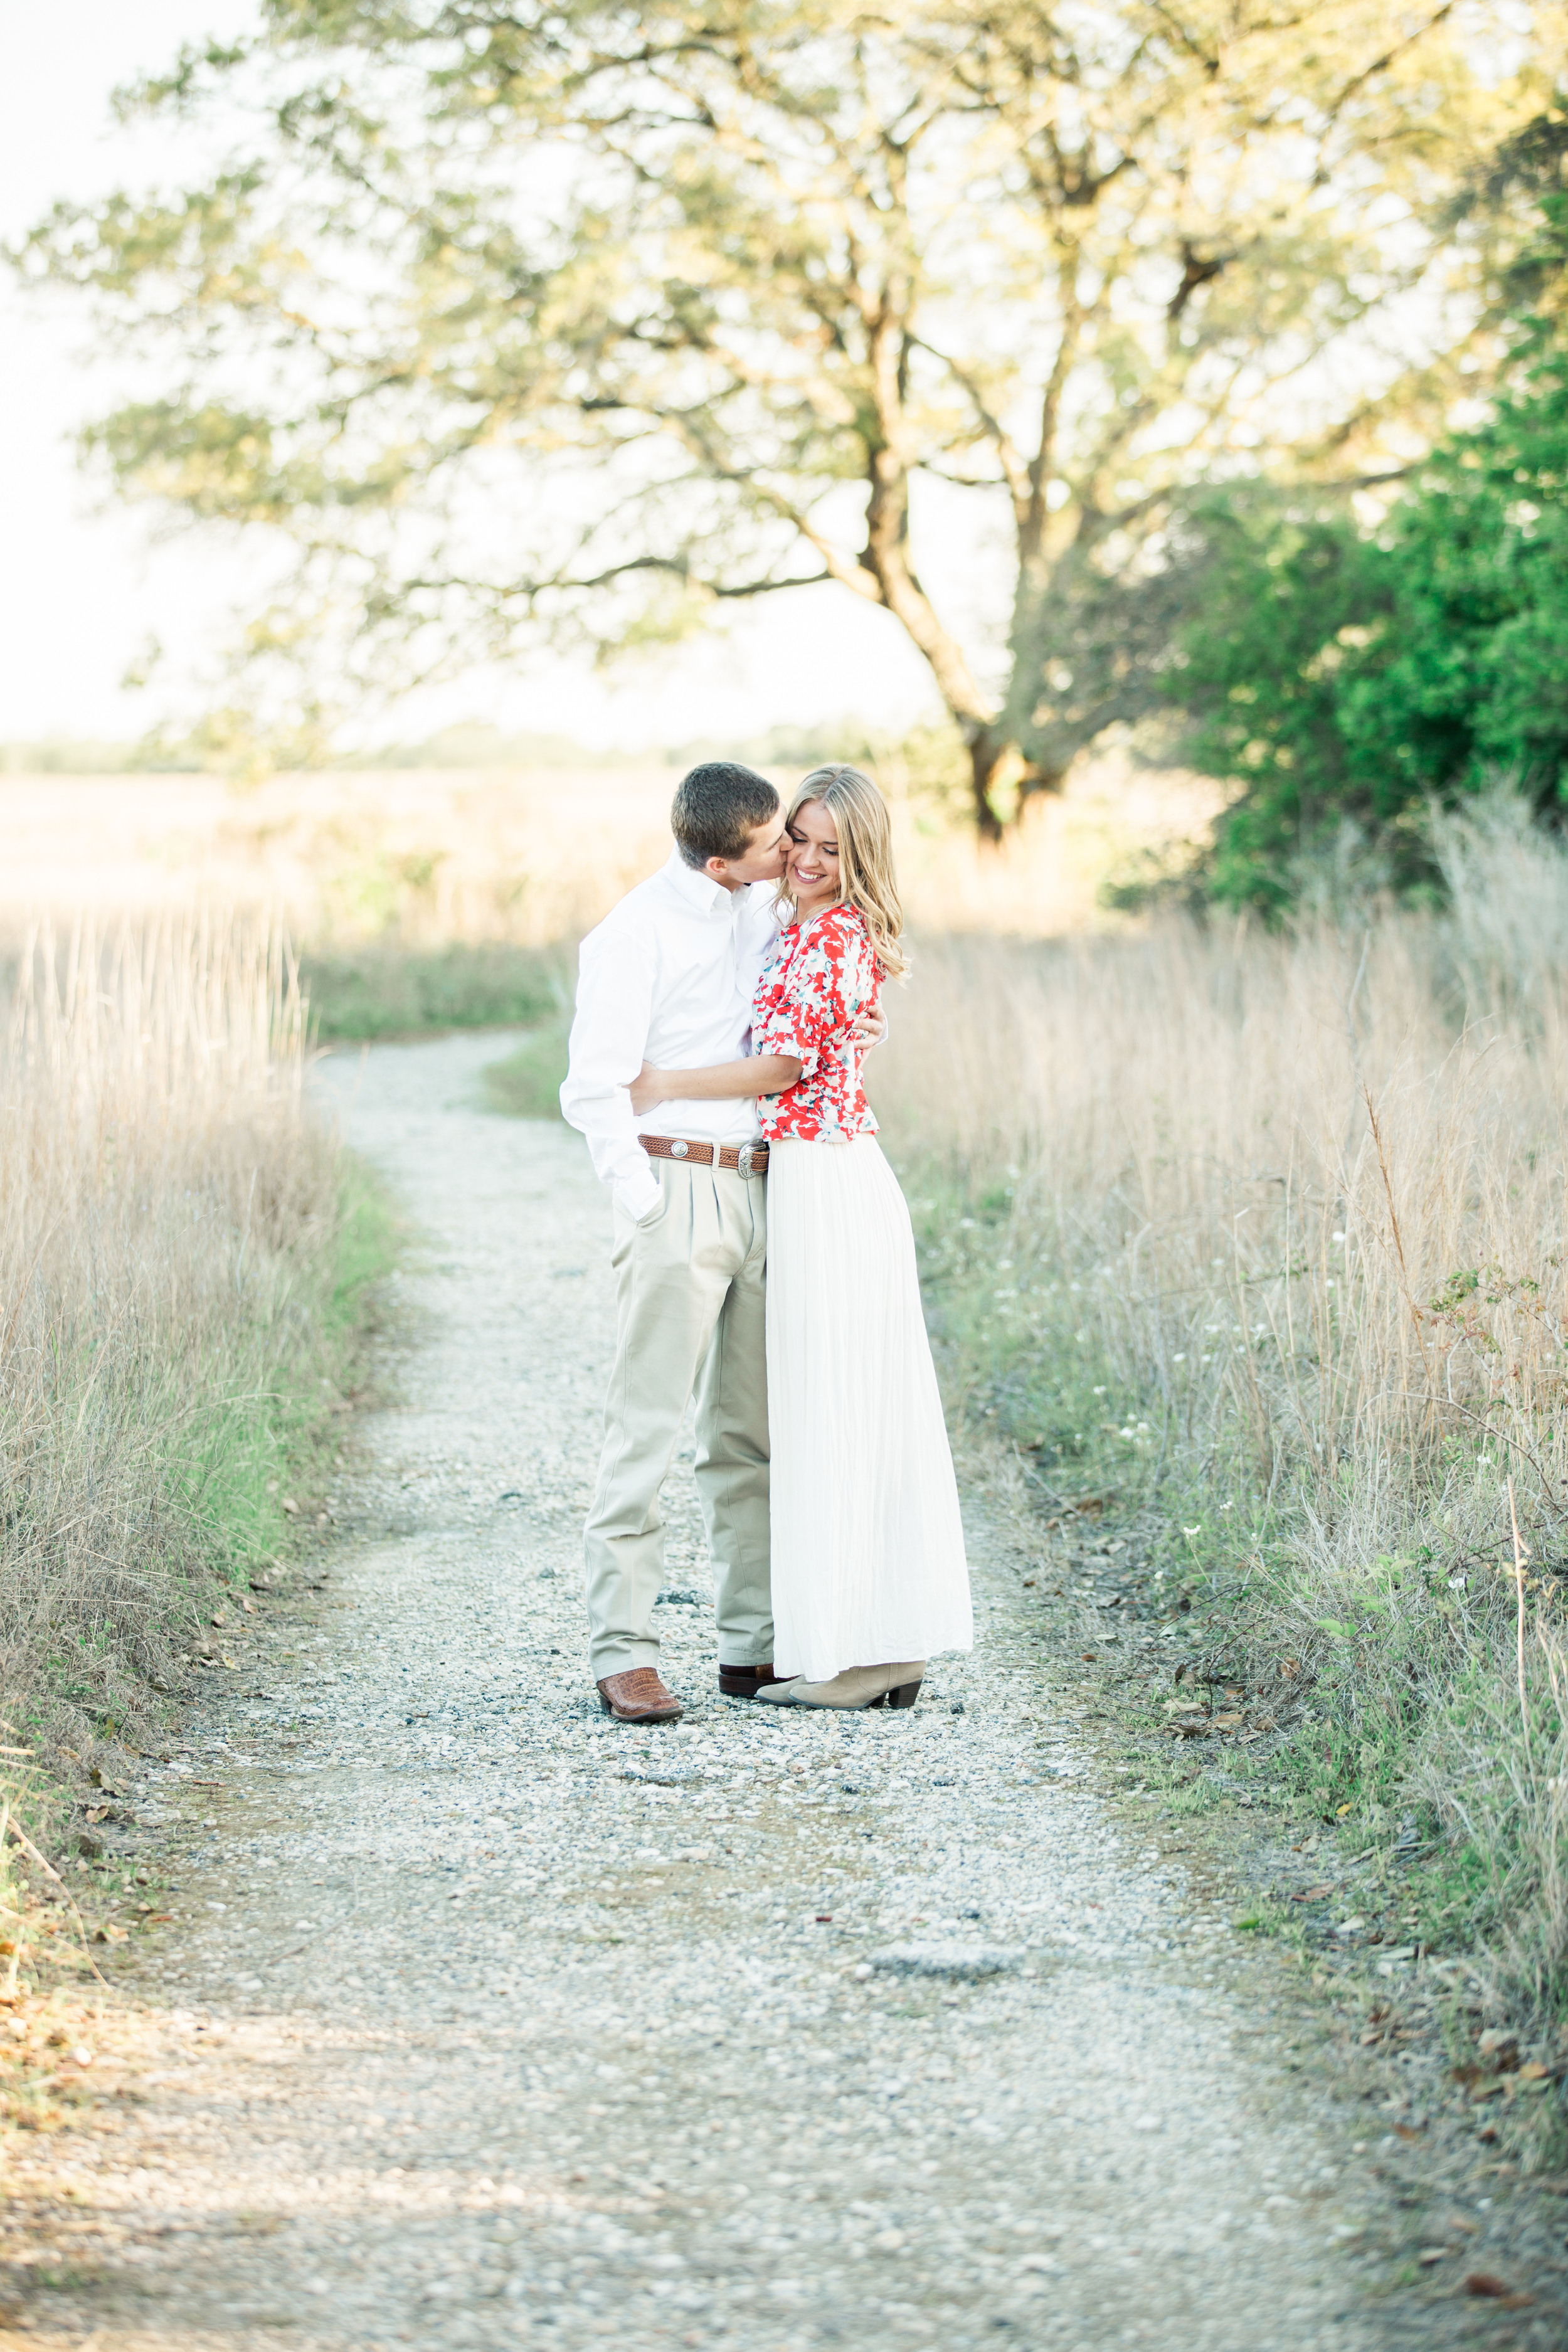 Joines_EngagementCollection-9.jpg